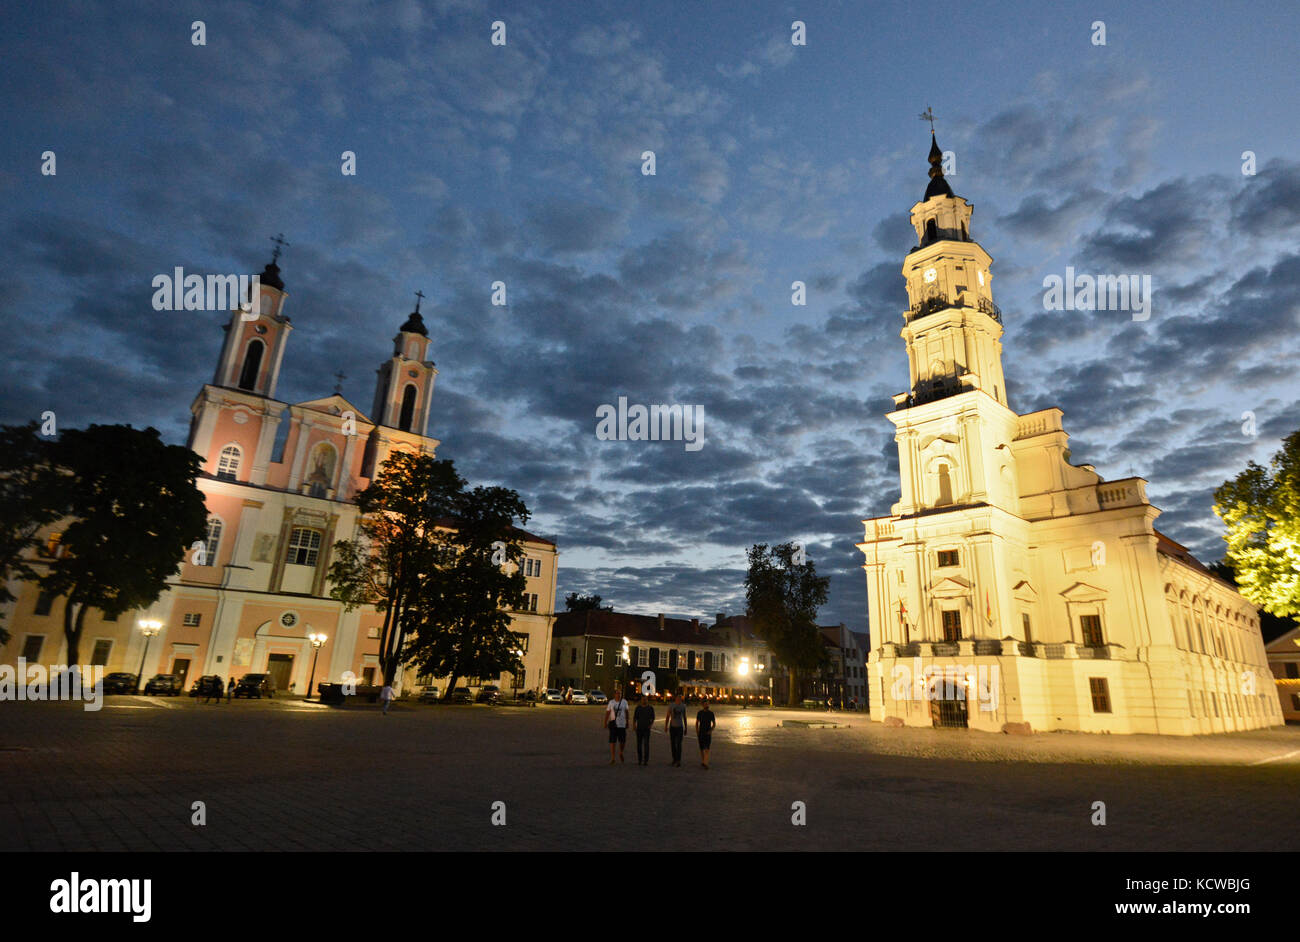 The Town Hall of Kaunas, Lithuania - Stock Image